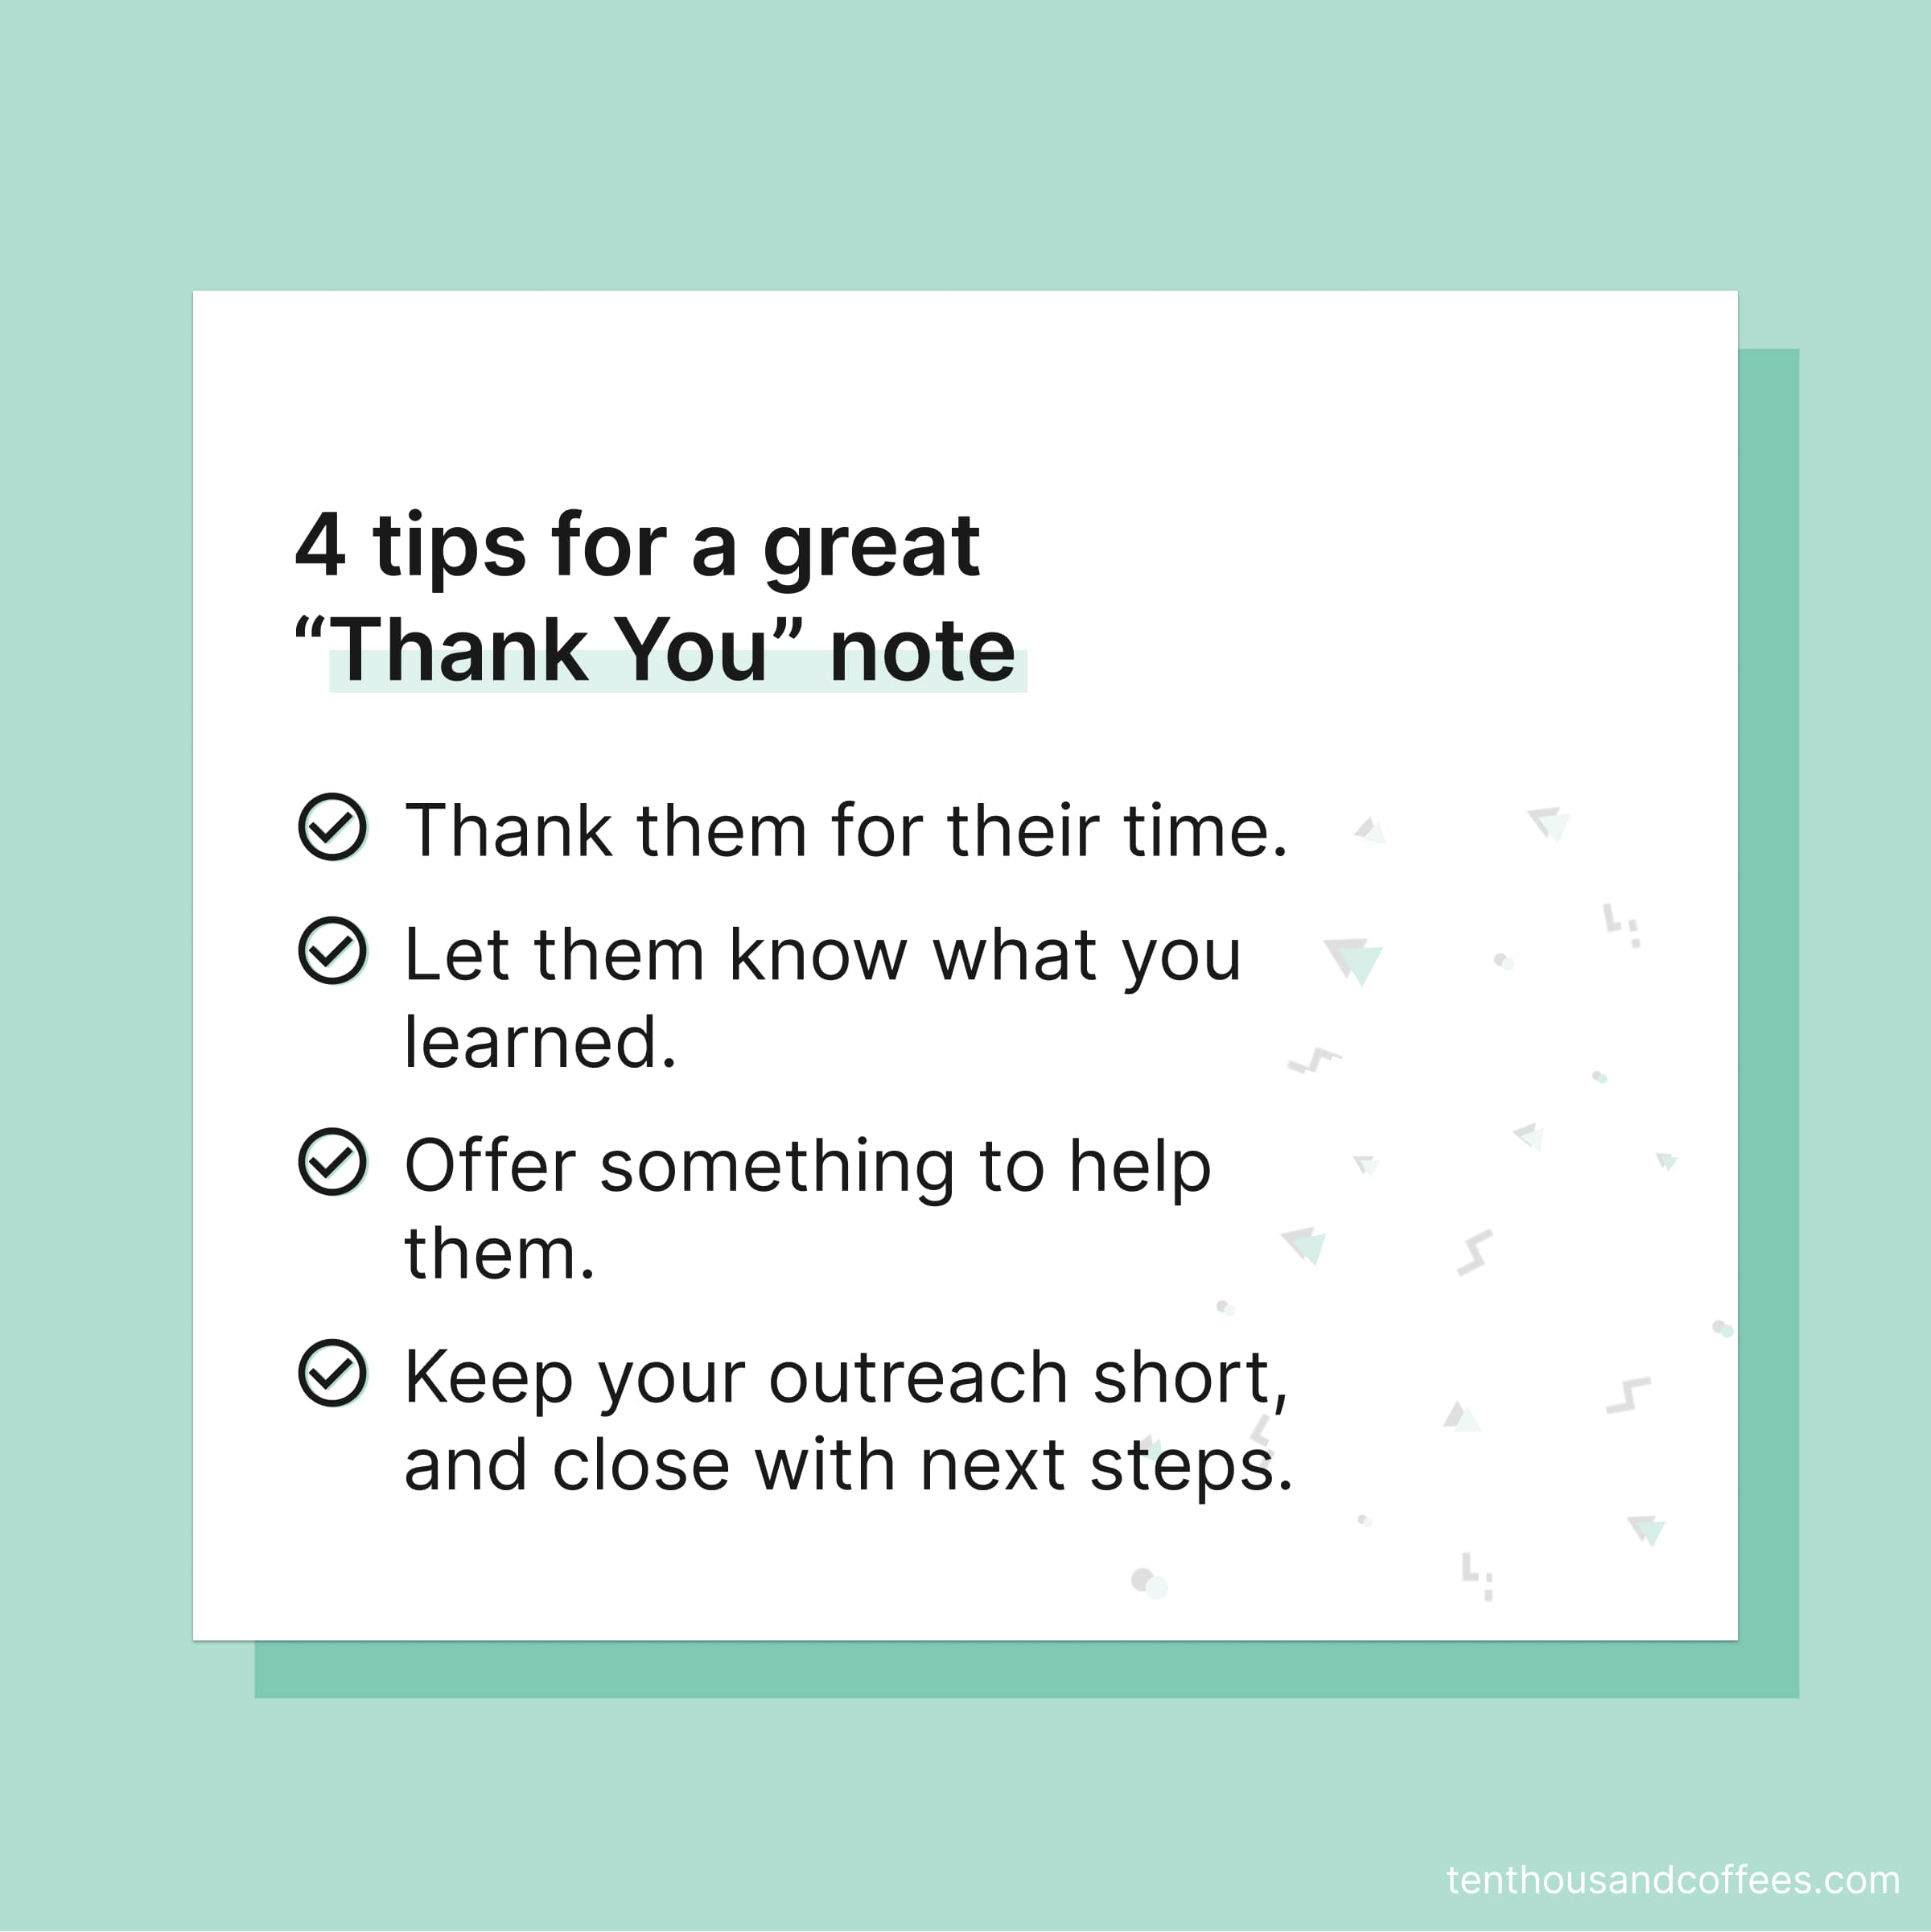 4 tips for a great thank you note